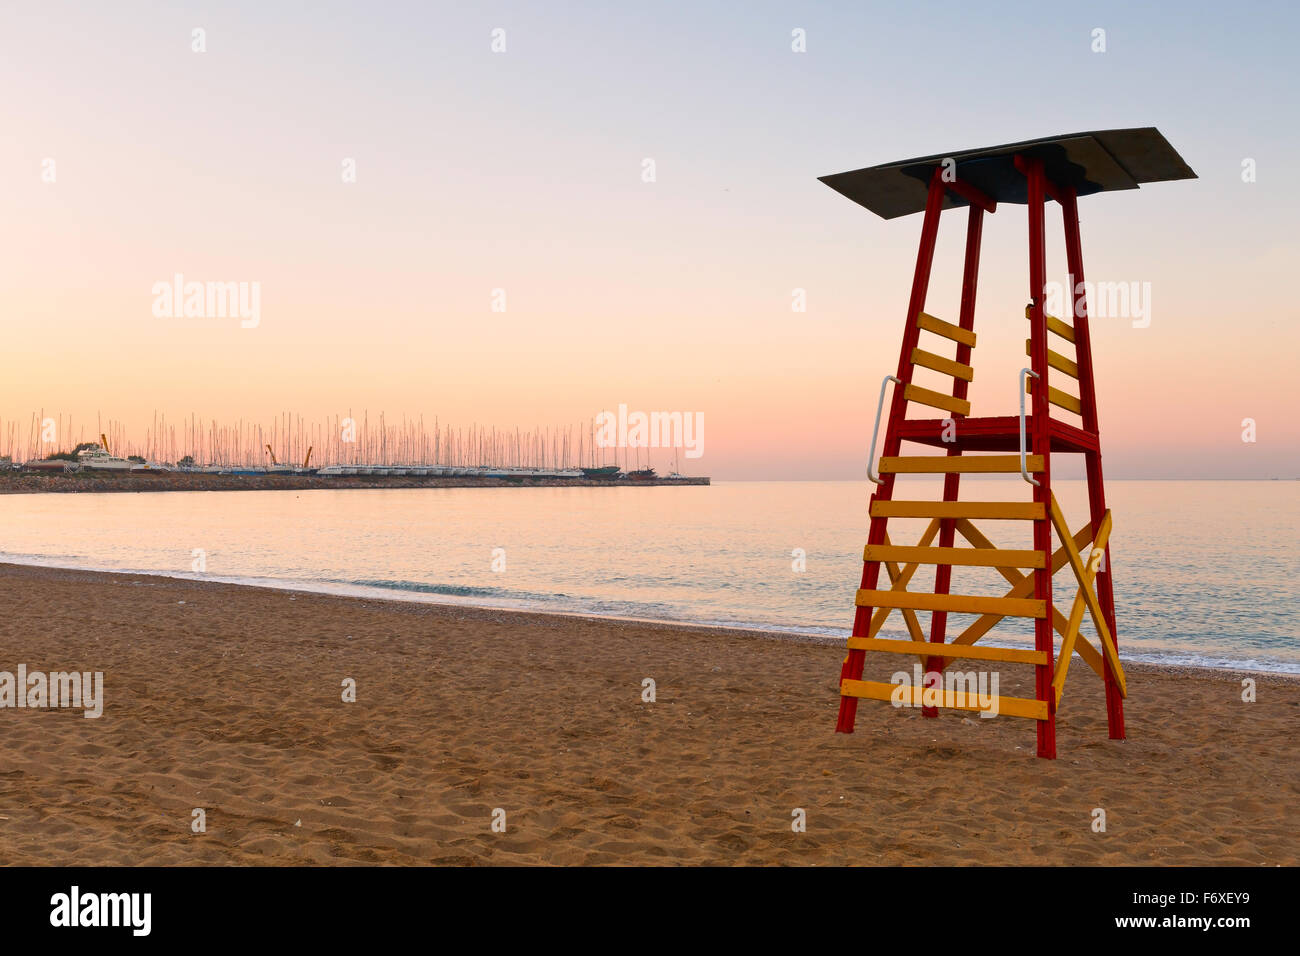 Lifeguard tower on a beach in Palaio Faliro and dry dock of Alimos marina in Athens, Greece. - Stock Image